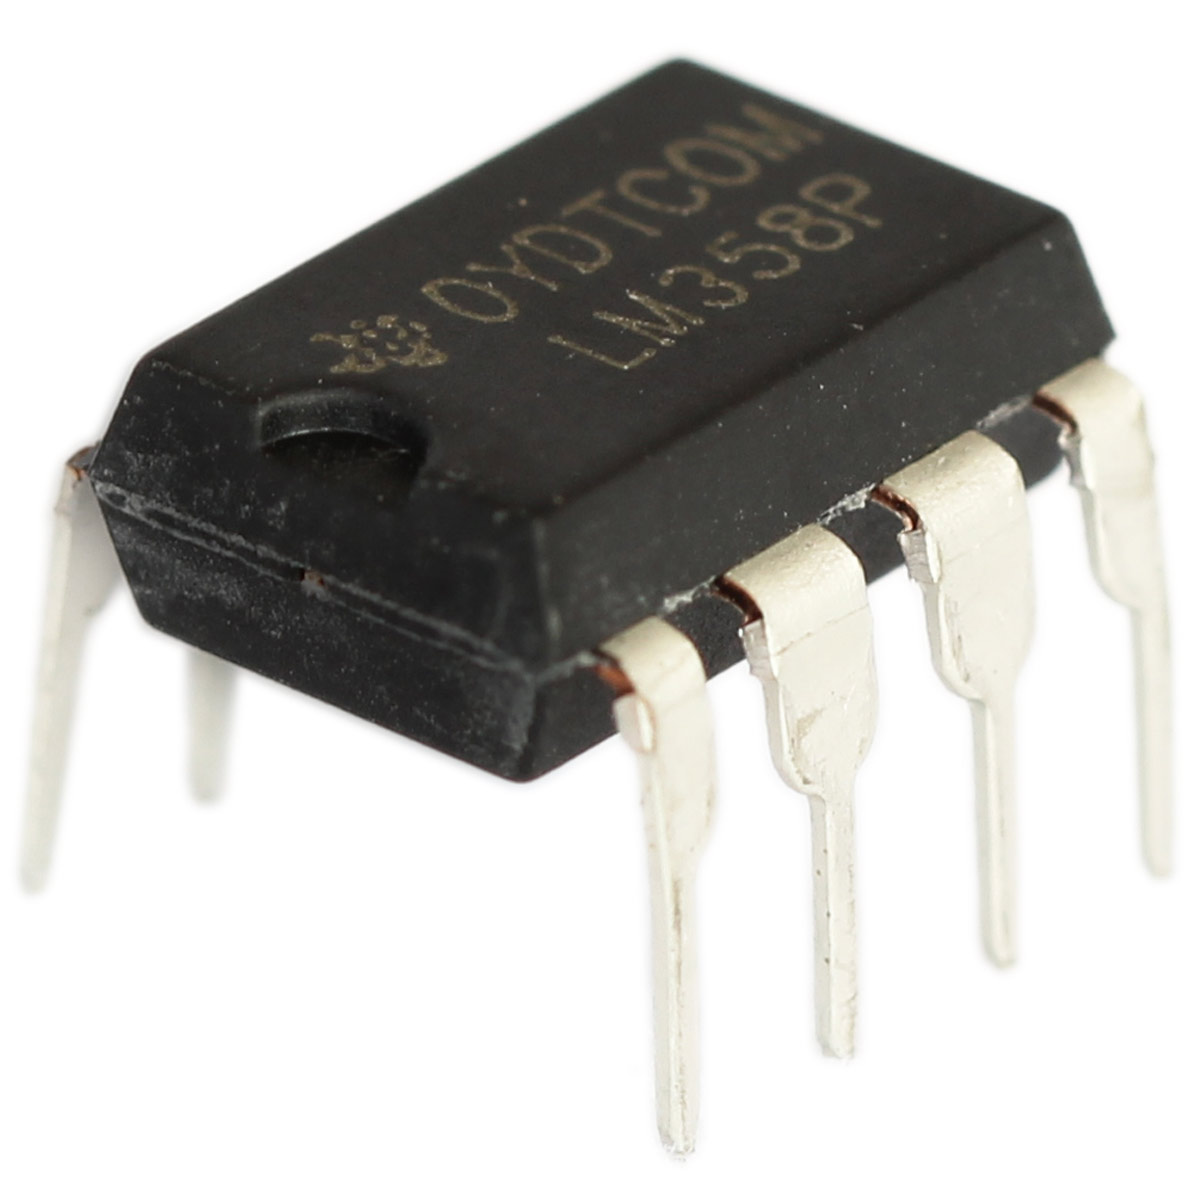 Lm358 Low Power Dual Operational Amplifier Protostack